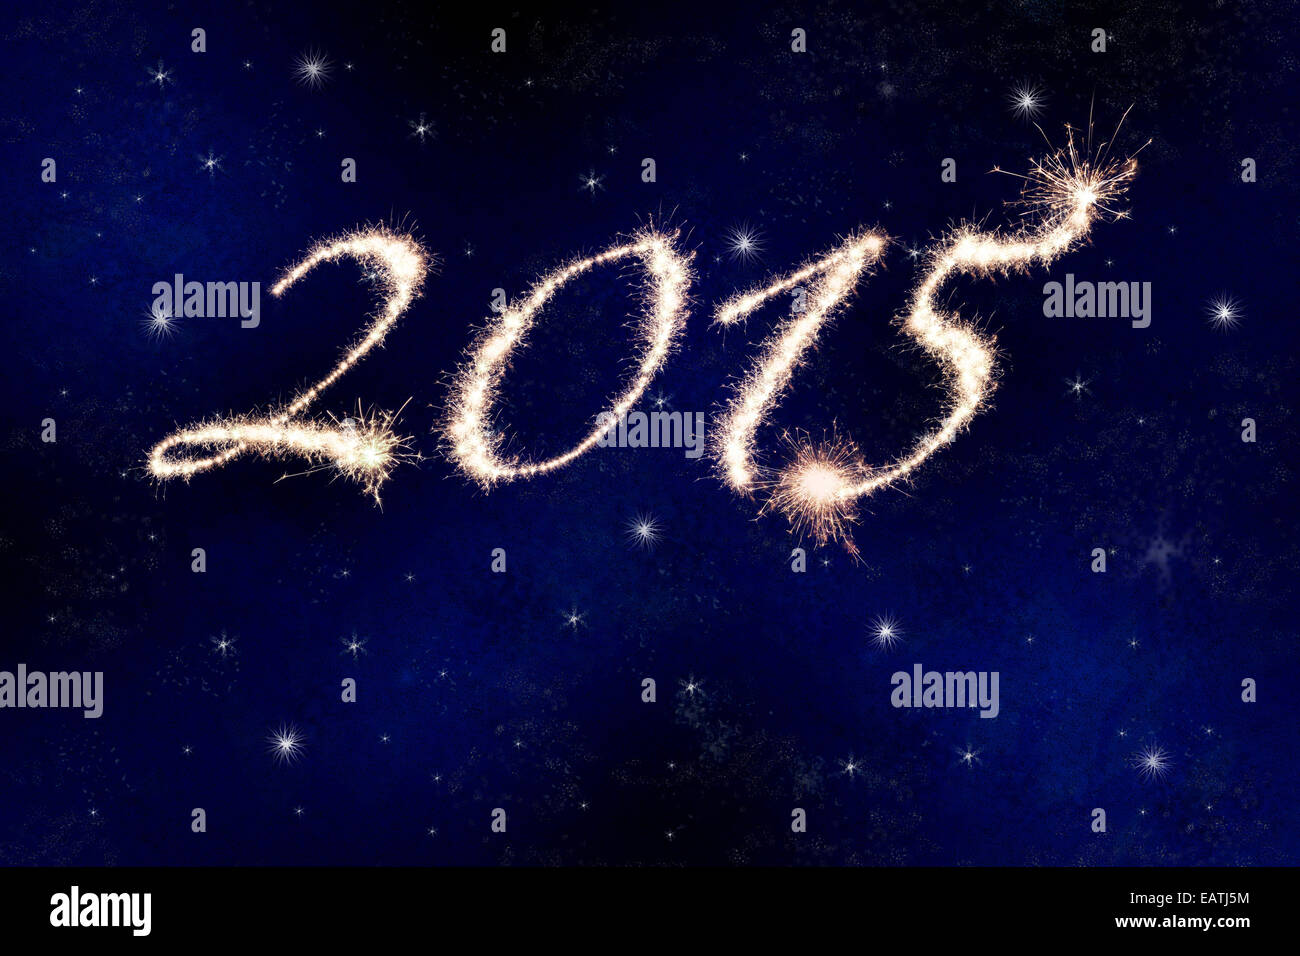 2015 in fireworks or sparklers against the night sky with stars celebrating the New Year. - Stock Image